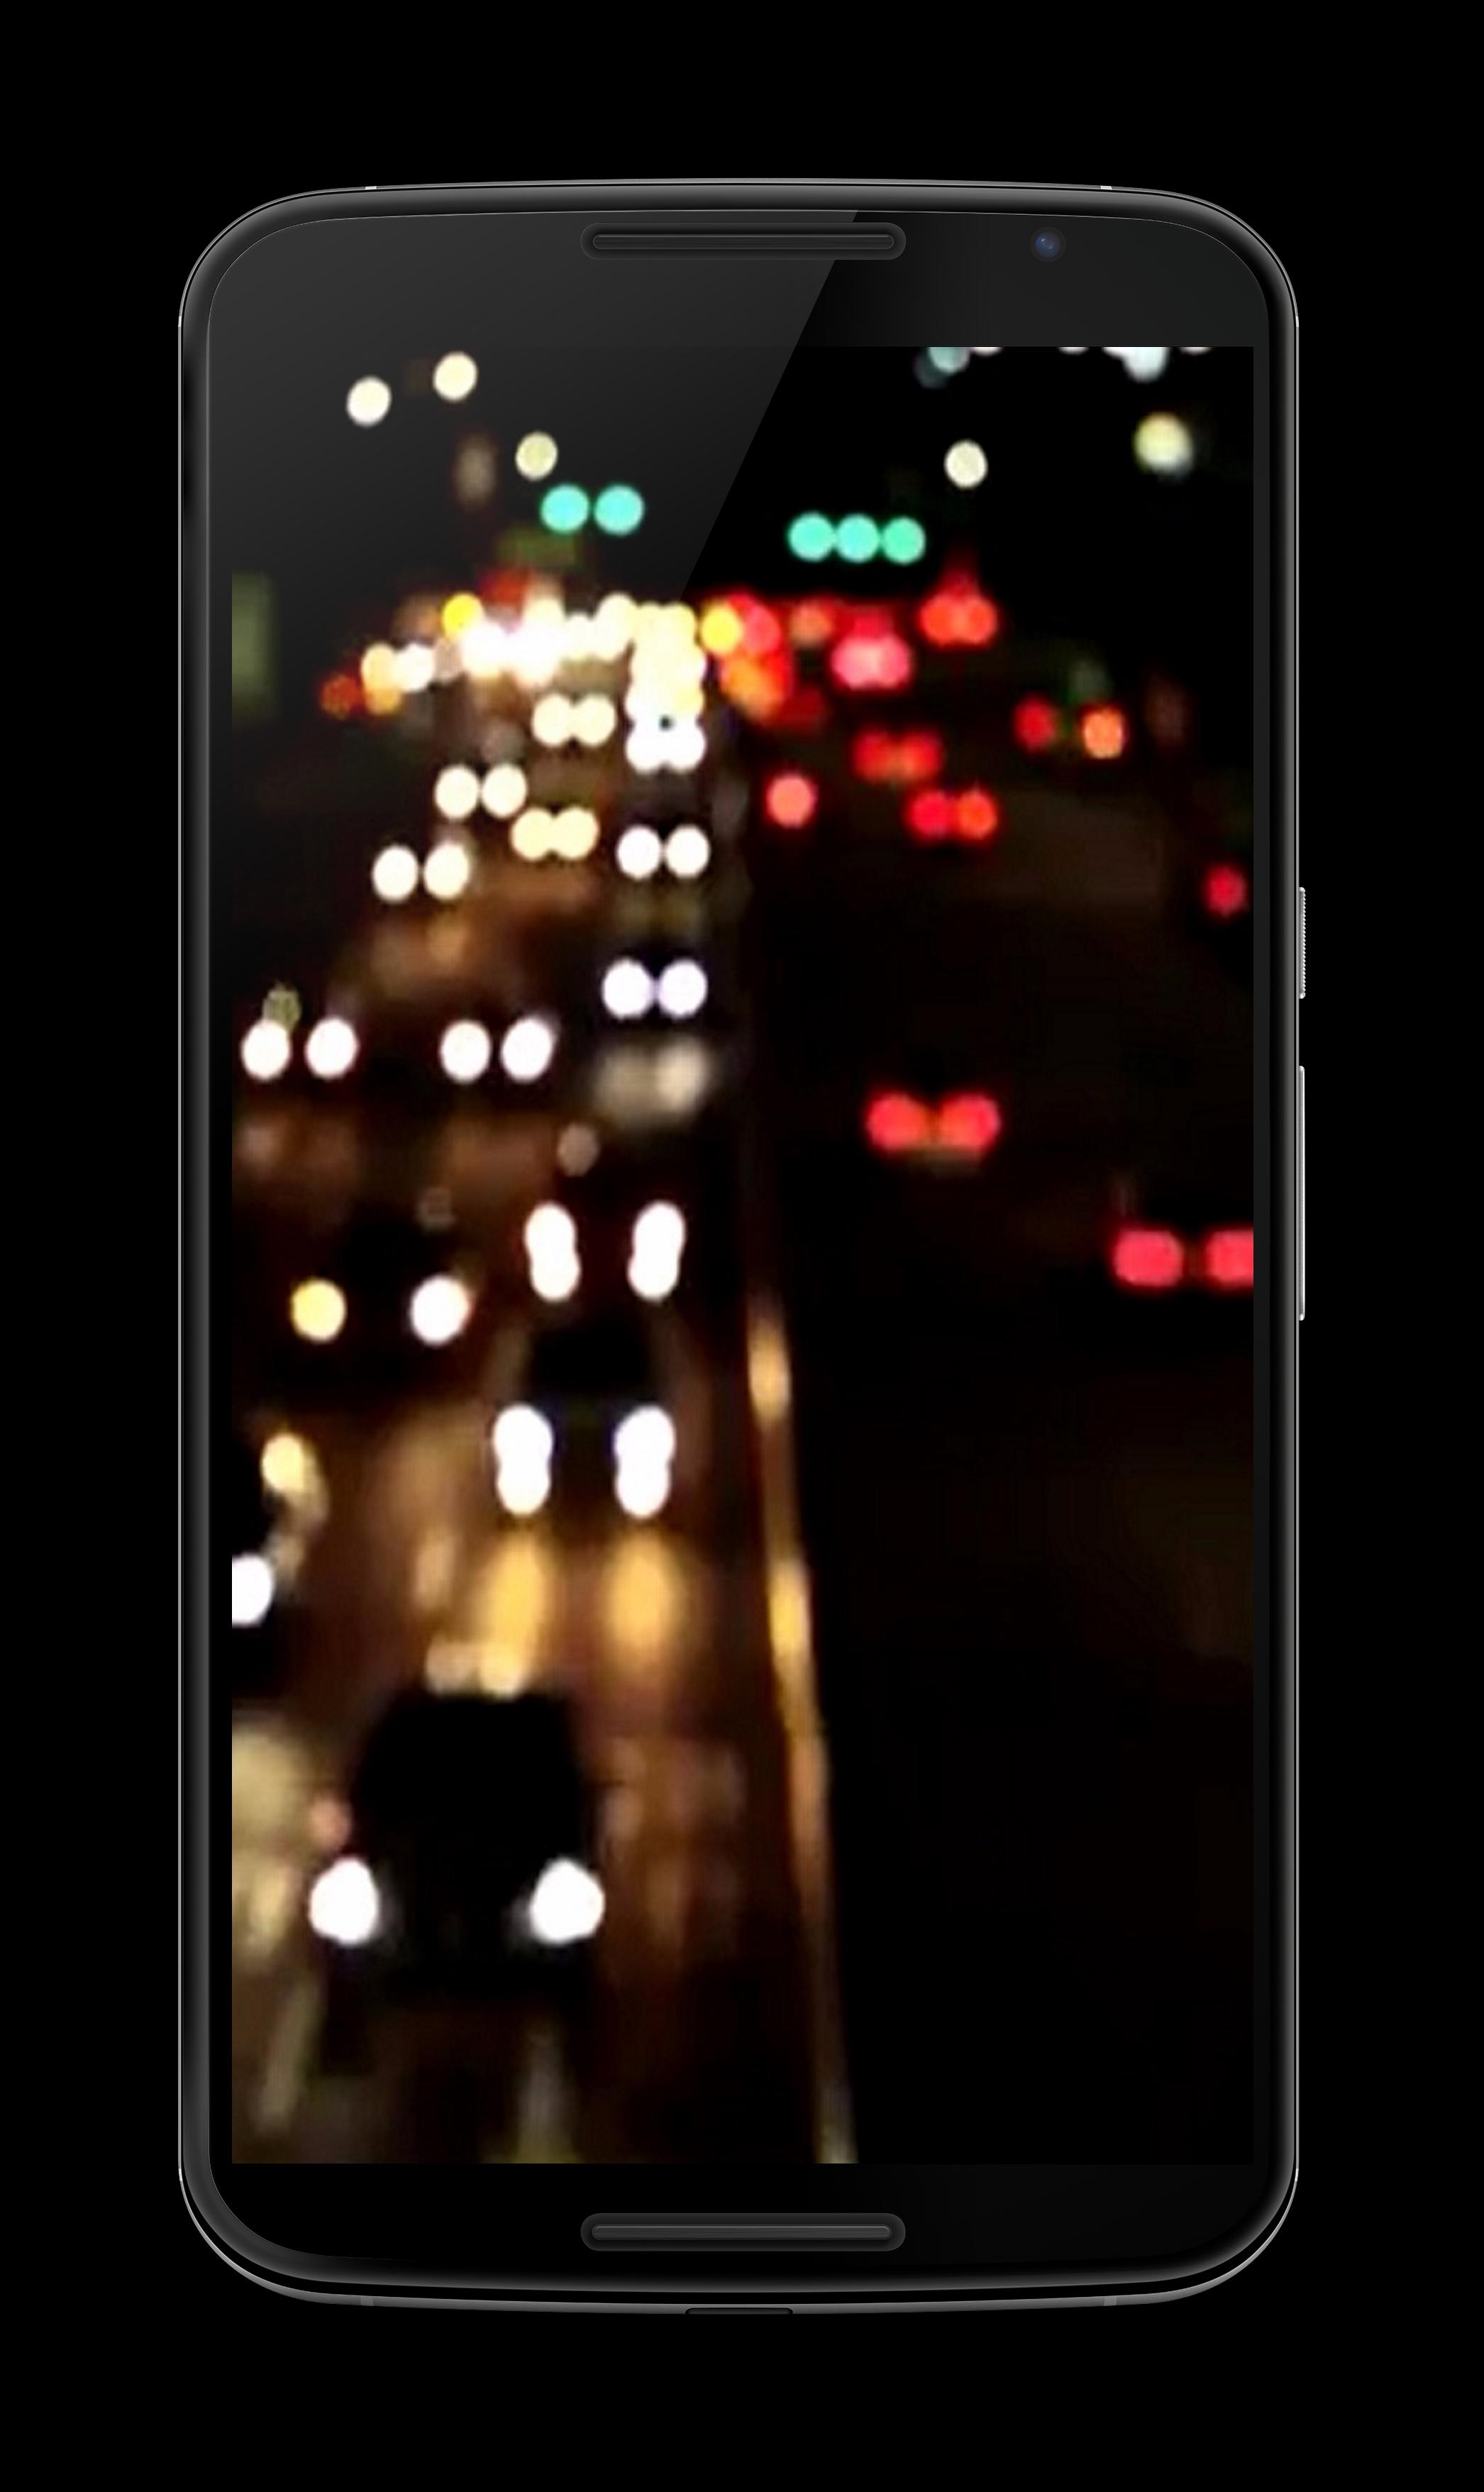 Noche Camino Video Wallpaper For Android Apk Download